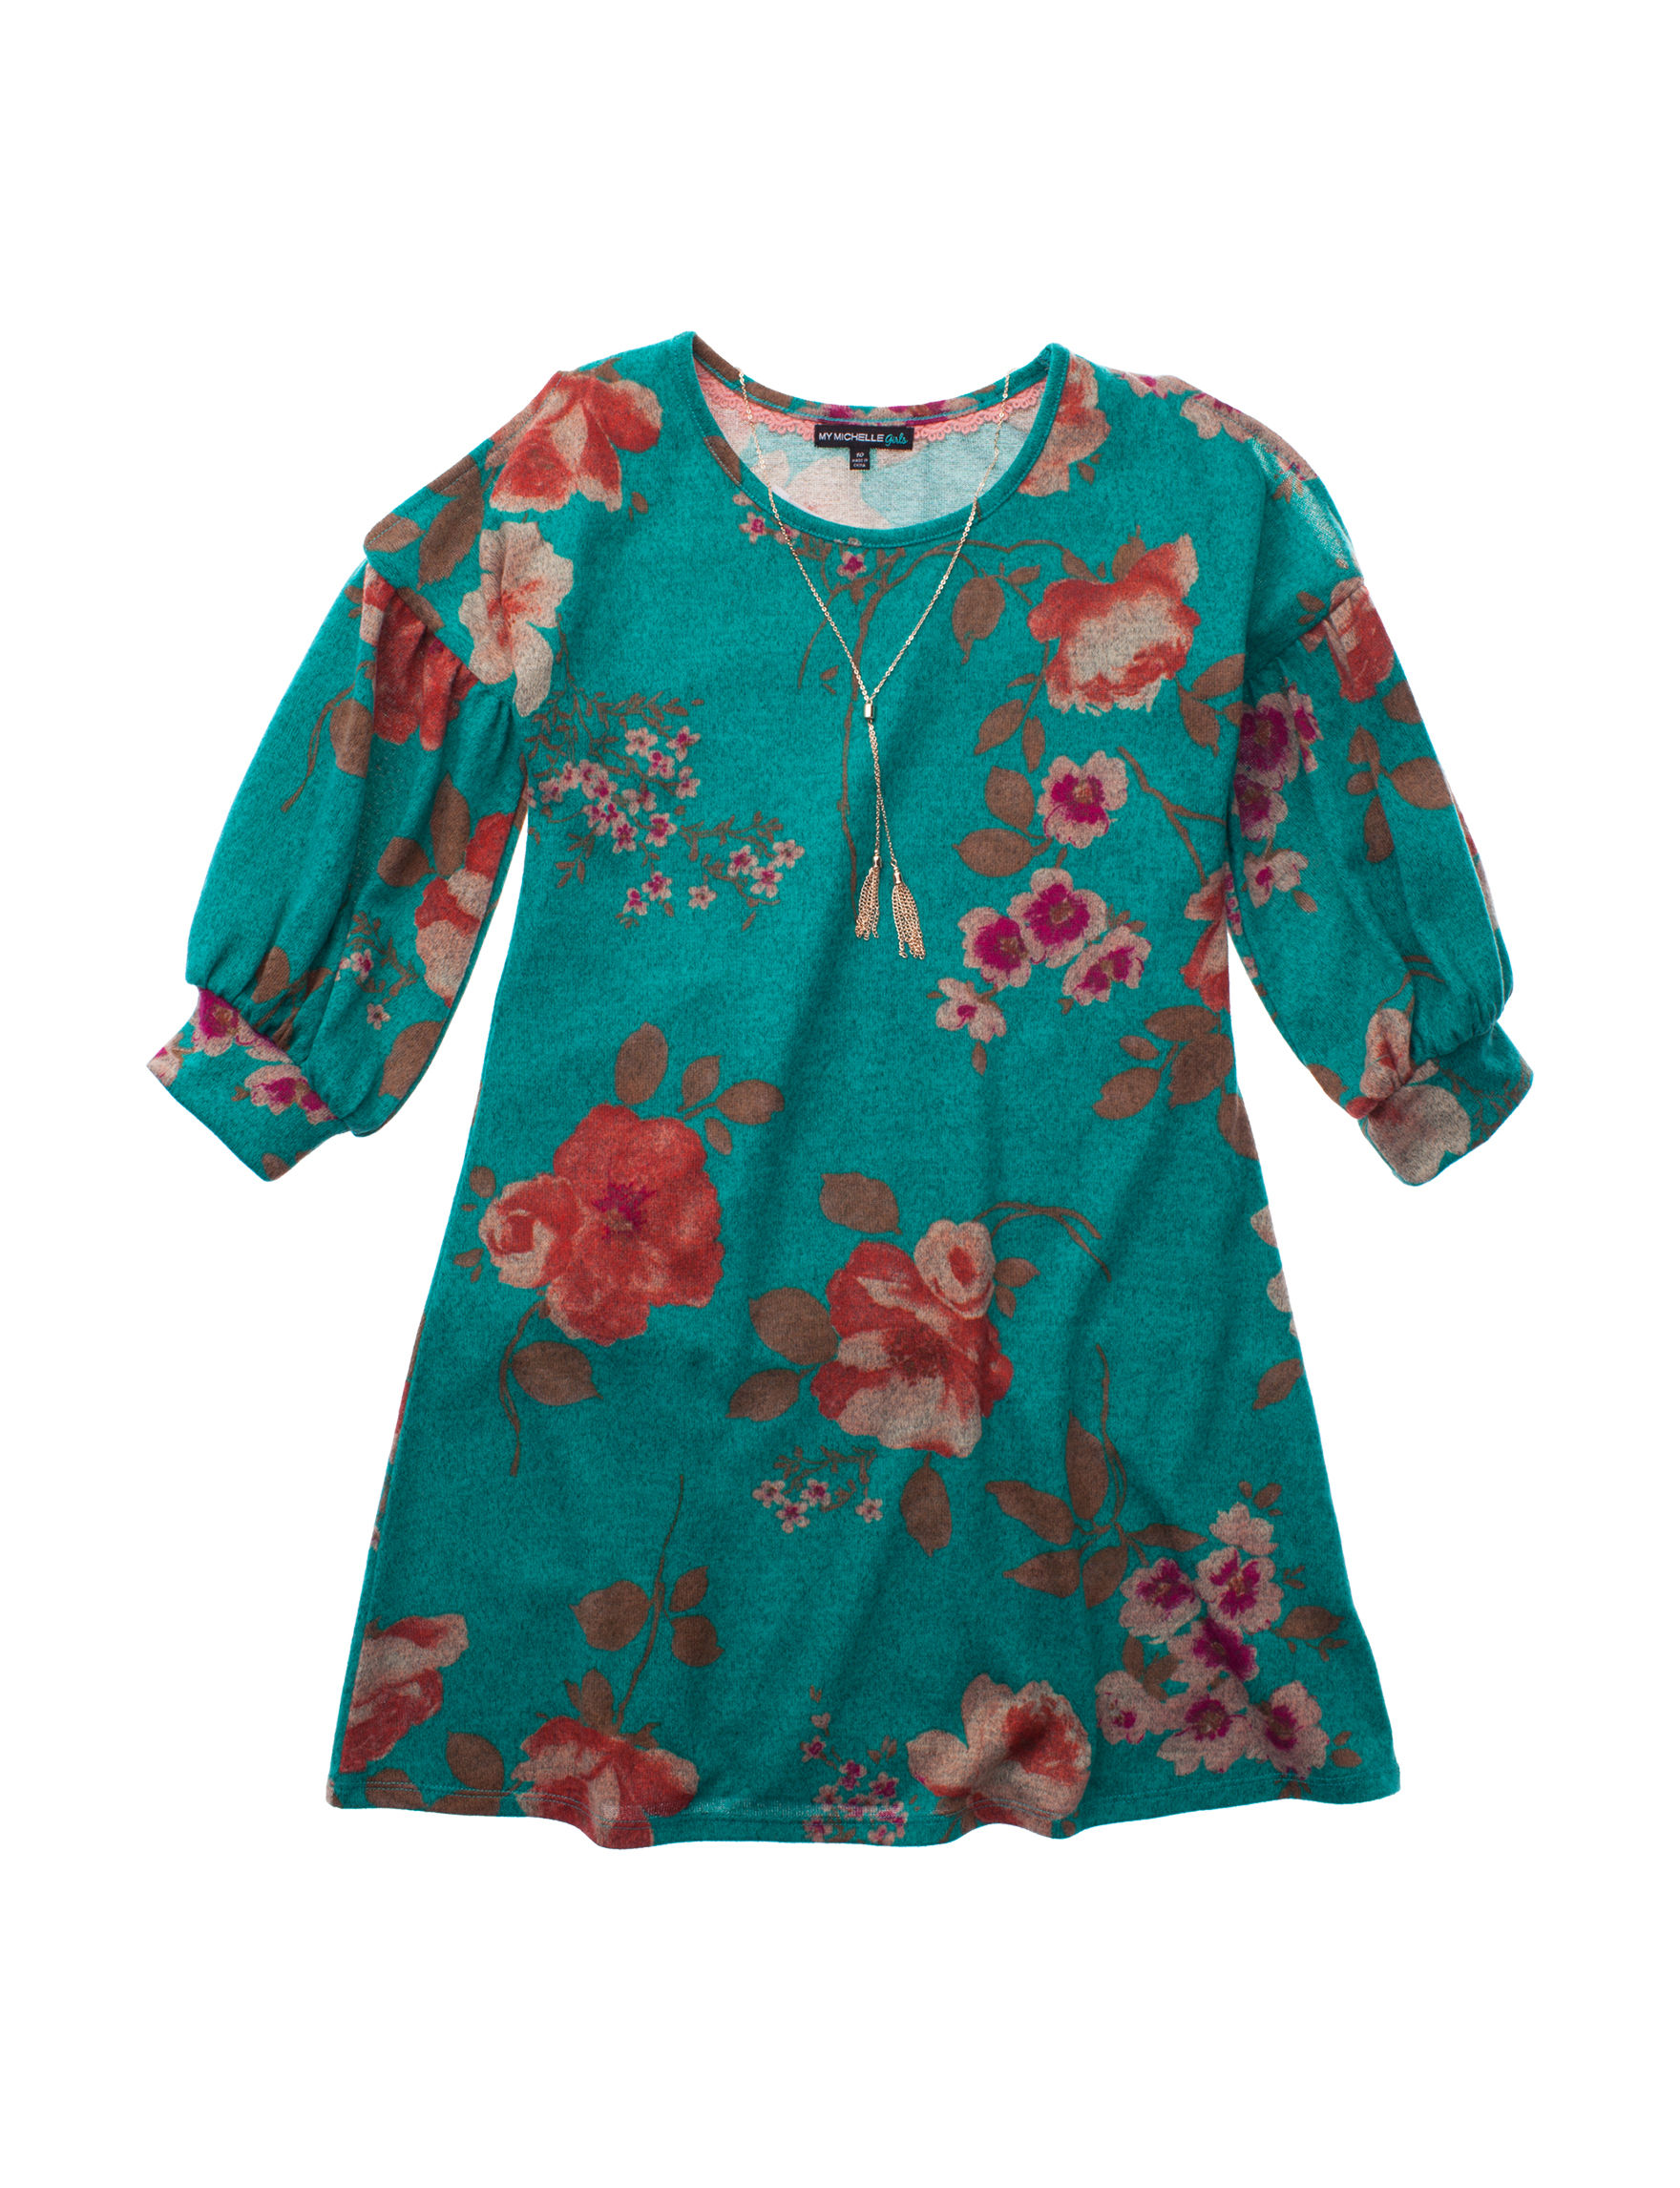 My Michelle Teal Floral